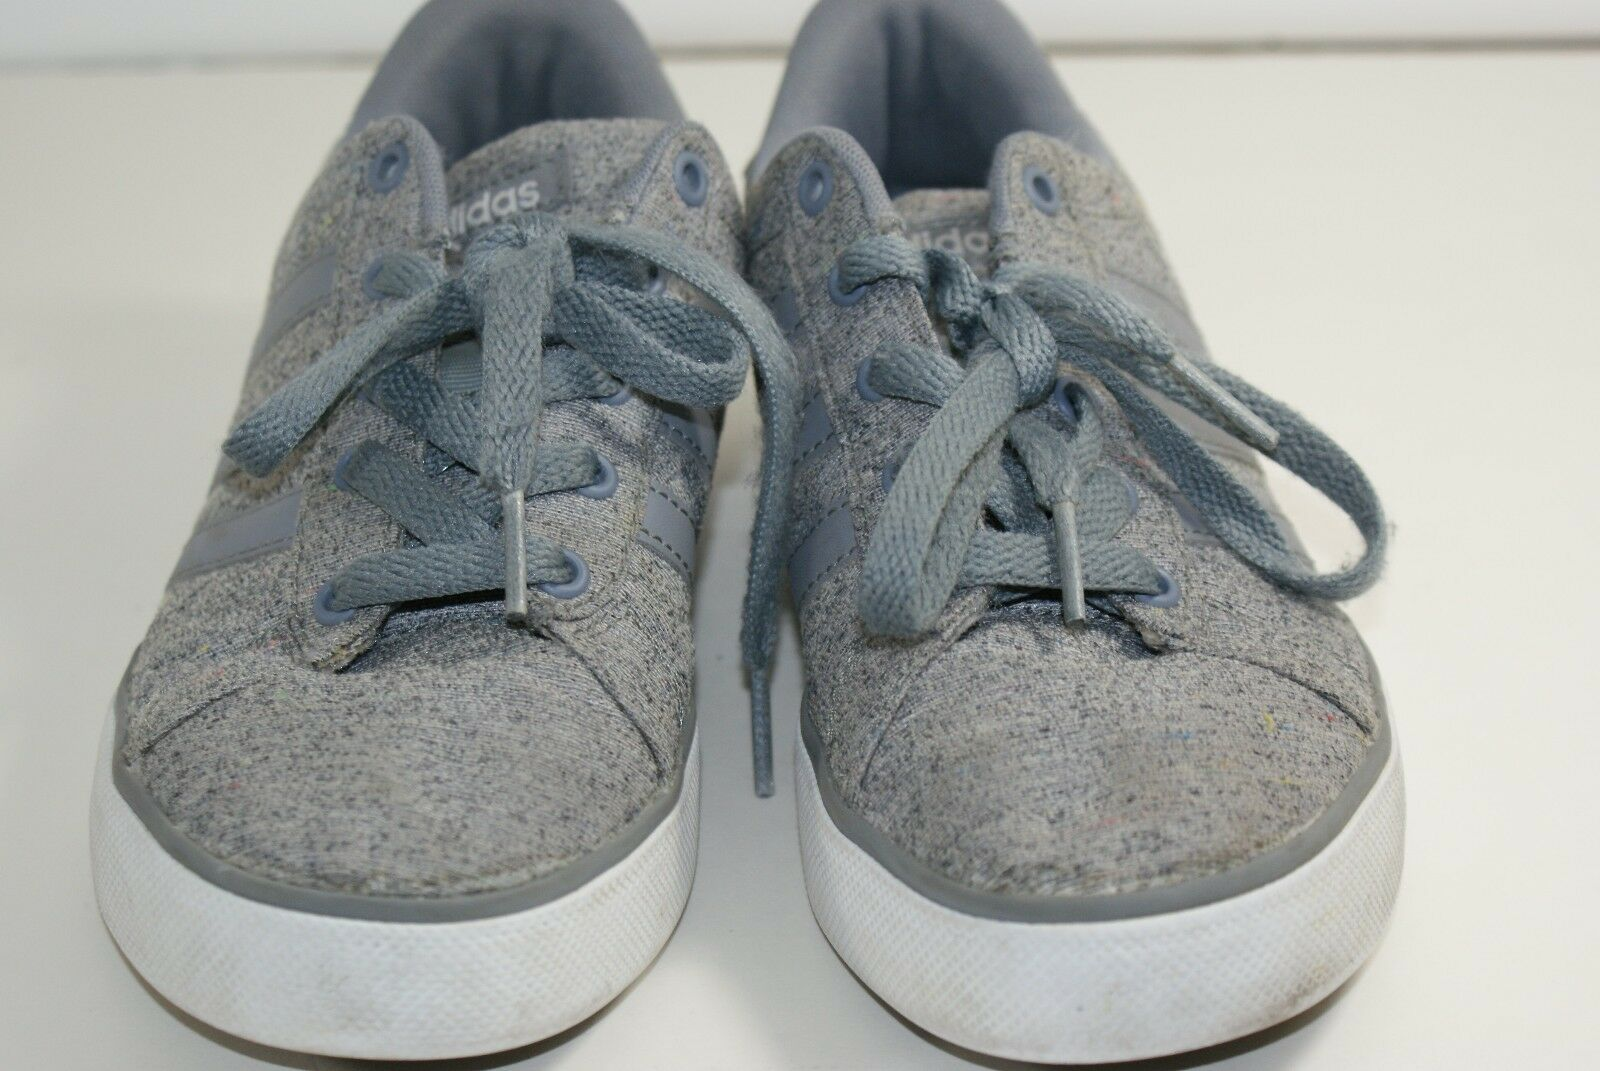 Adidas Neo Comfort Women's US Size 4.5 Lite Racer Running Shoes AW5400 Gray